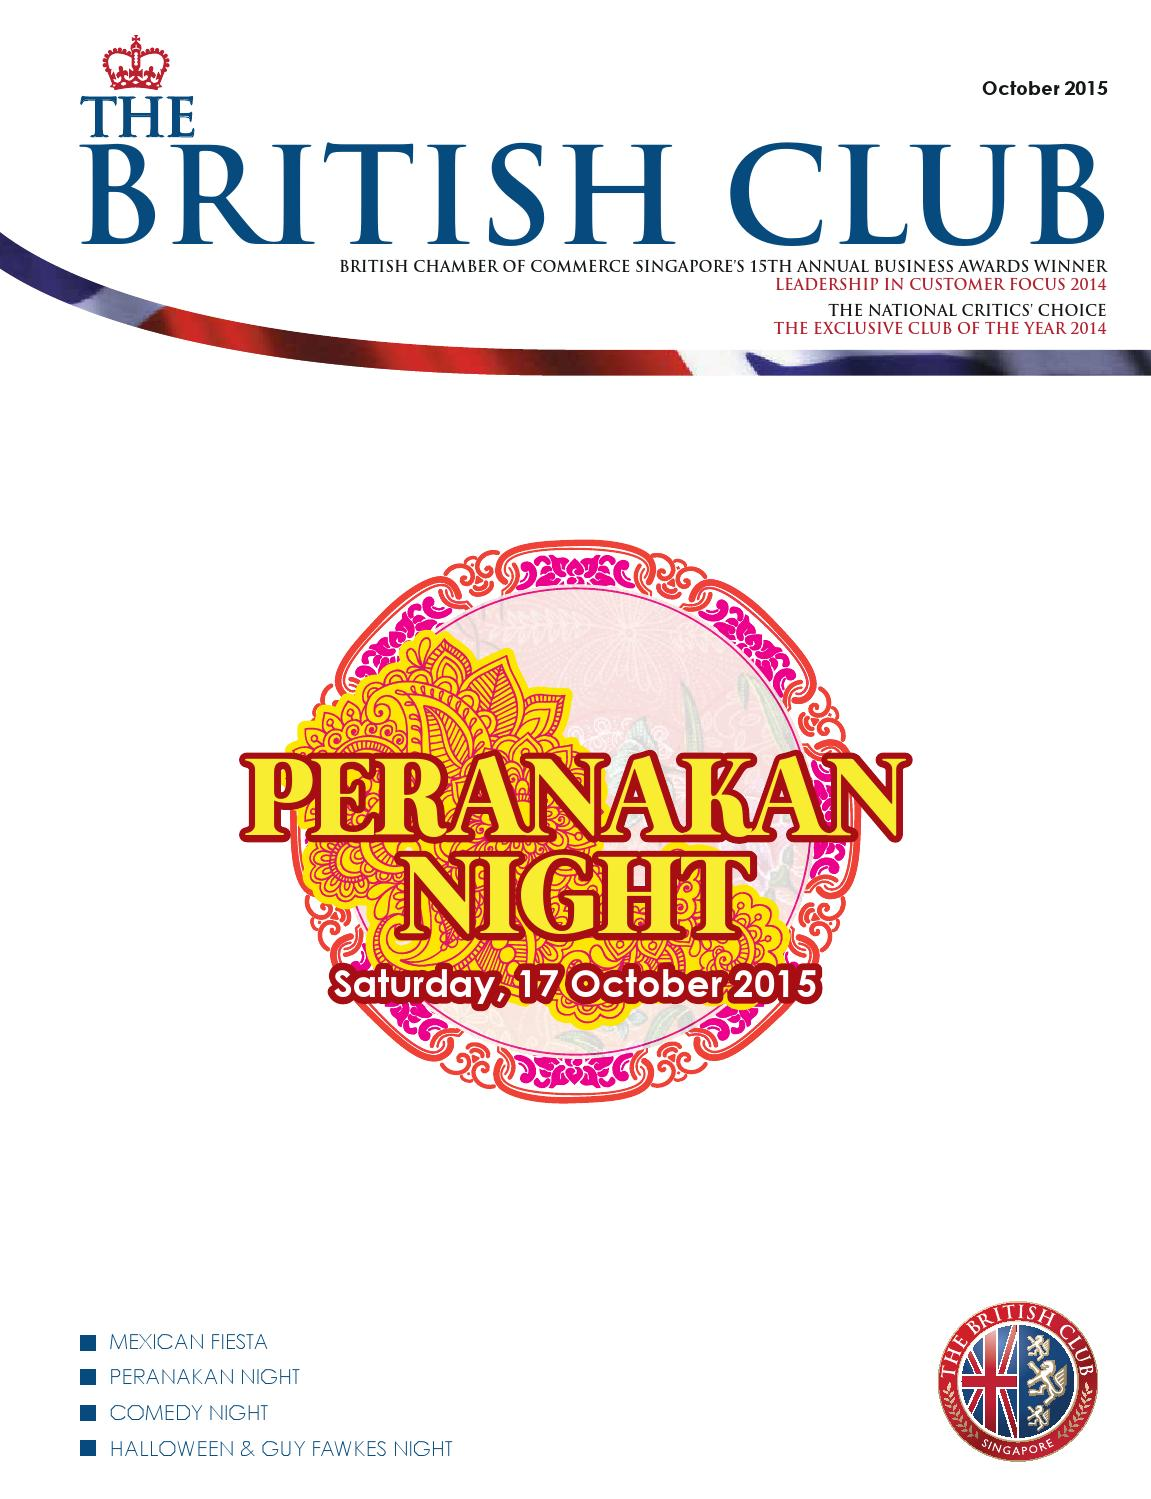 October 2015 by The British Club - issuu